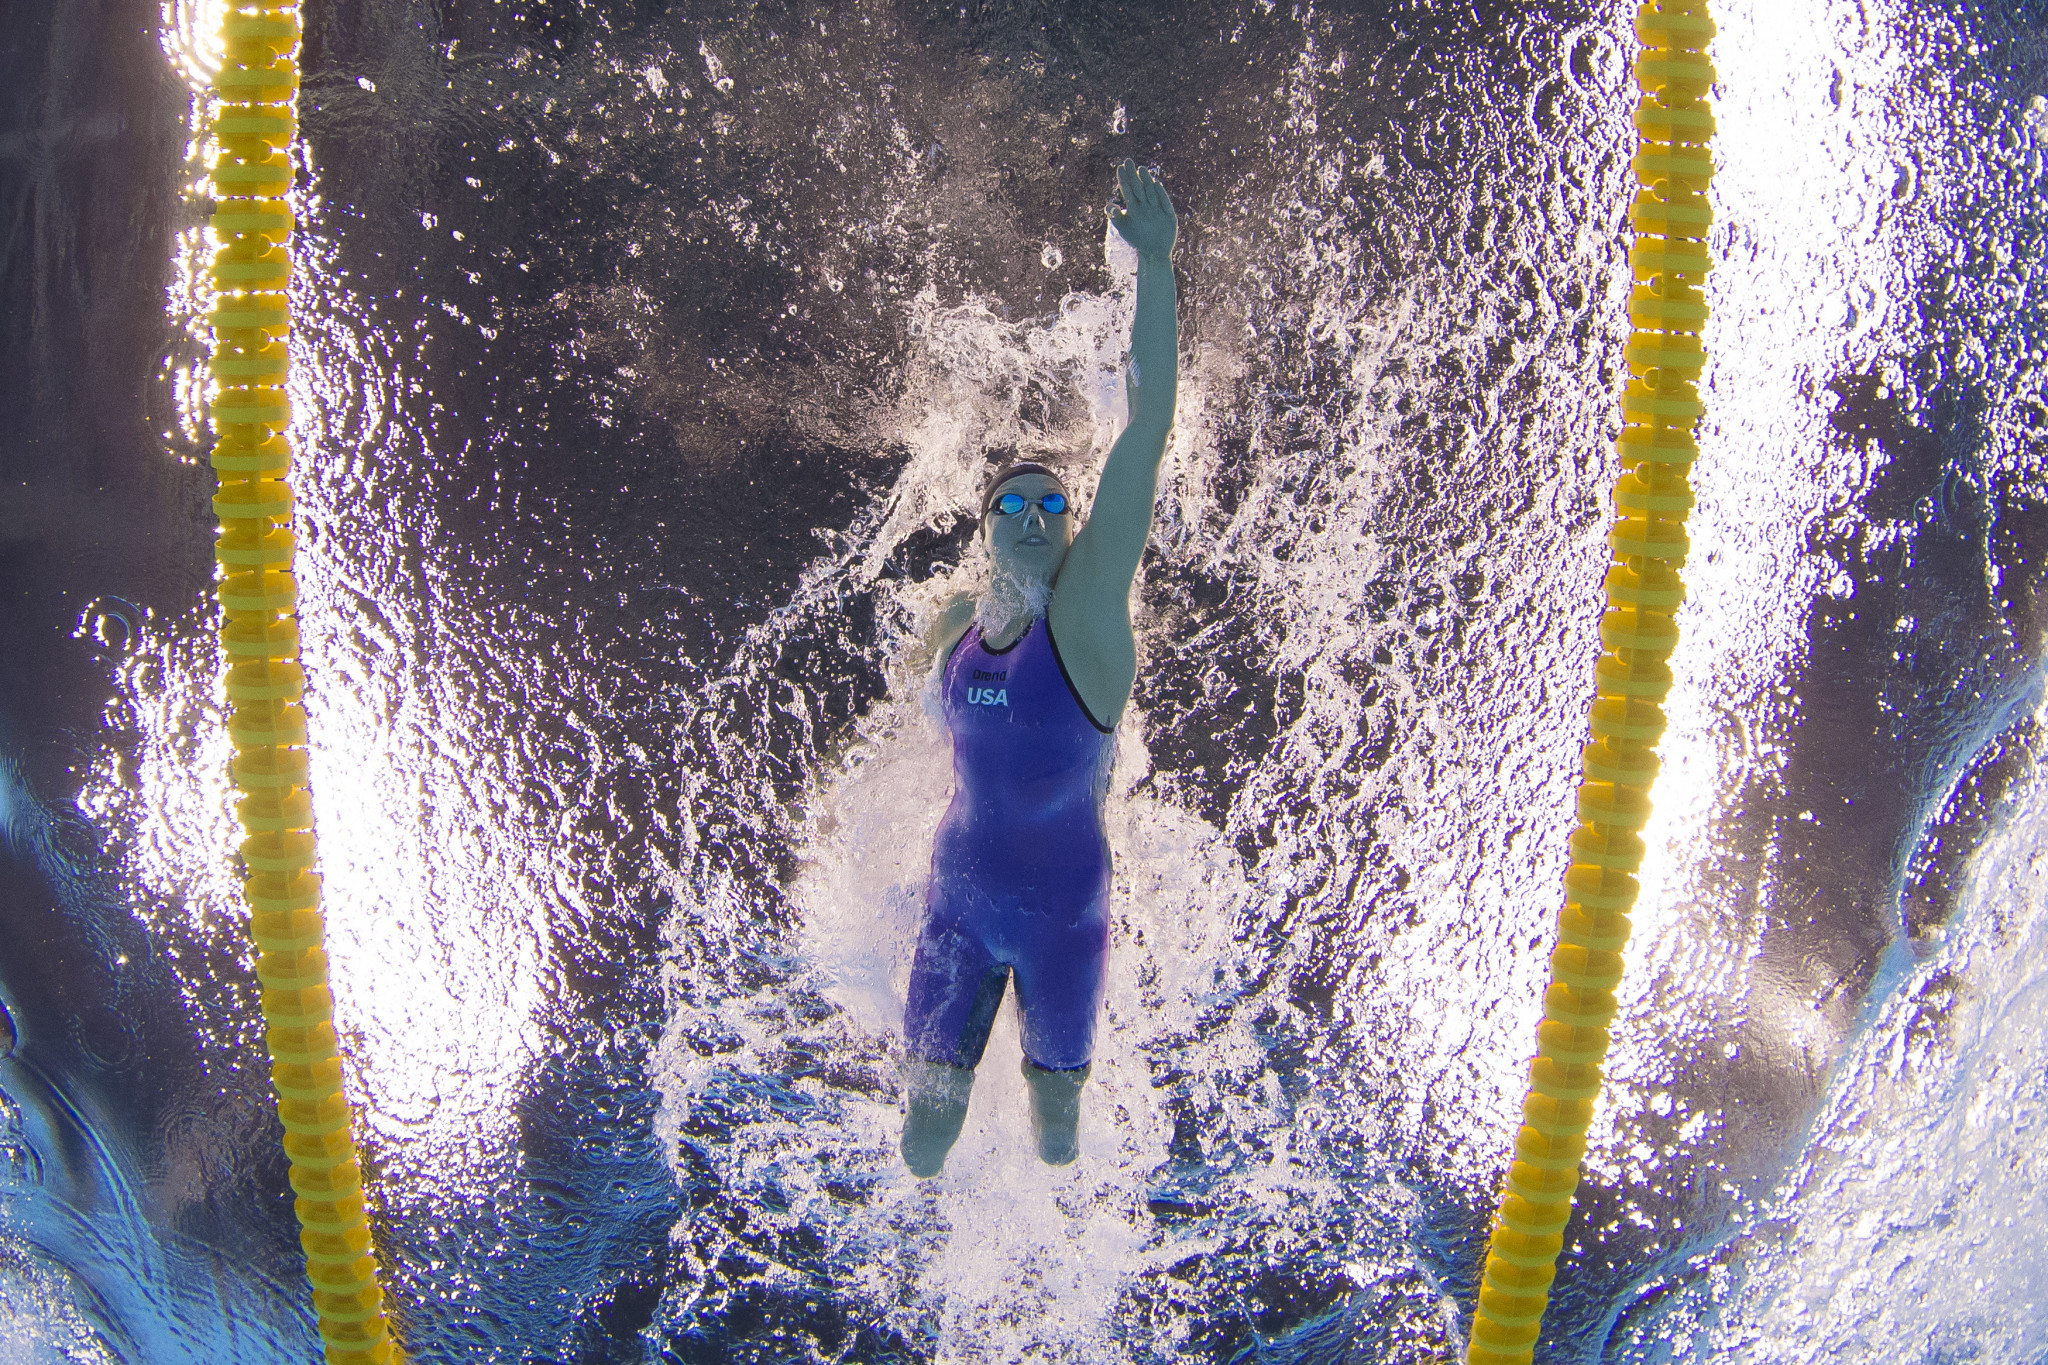 The 13-time Paralympic gold medallist Jessica Long will lead the United States team at the World Para Swimming World Series event in Lewisville ©Getty Images